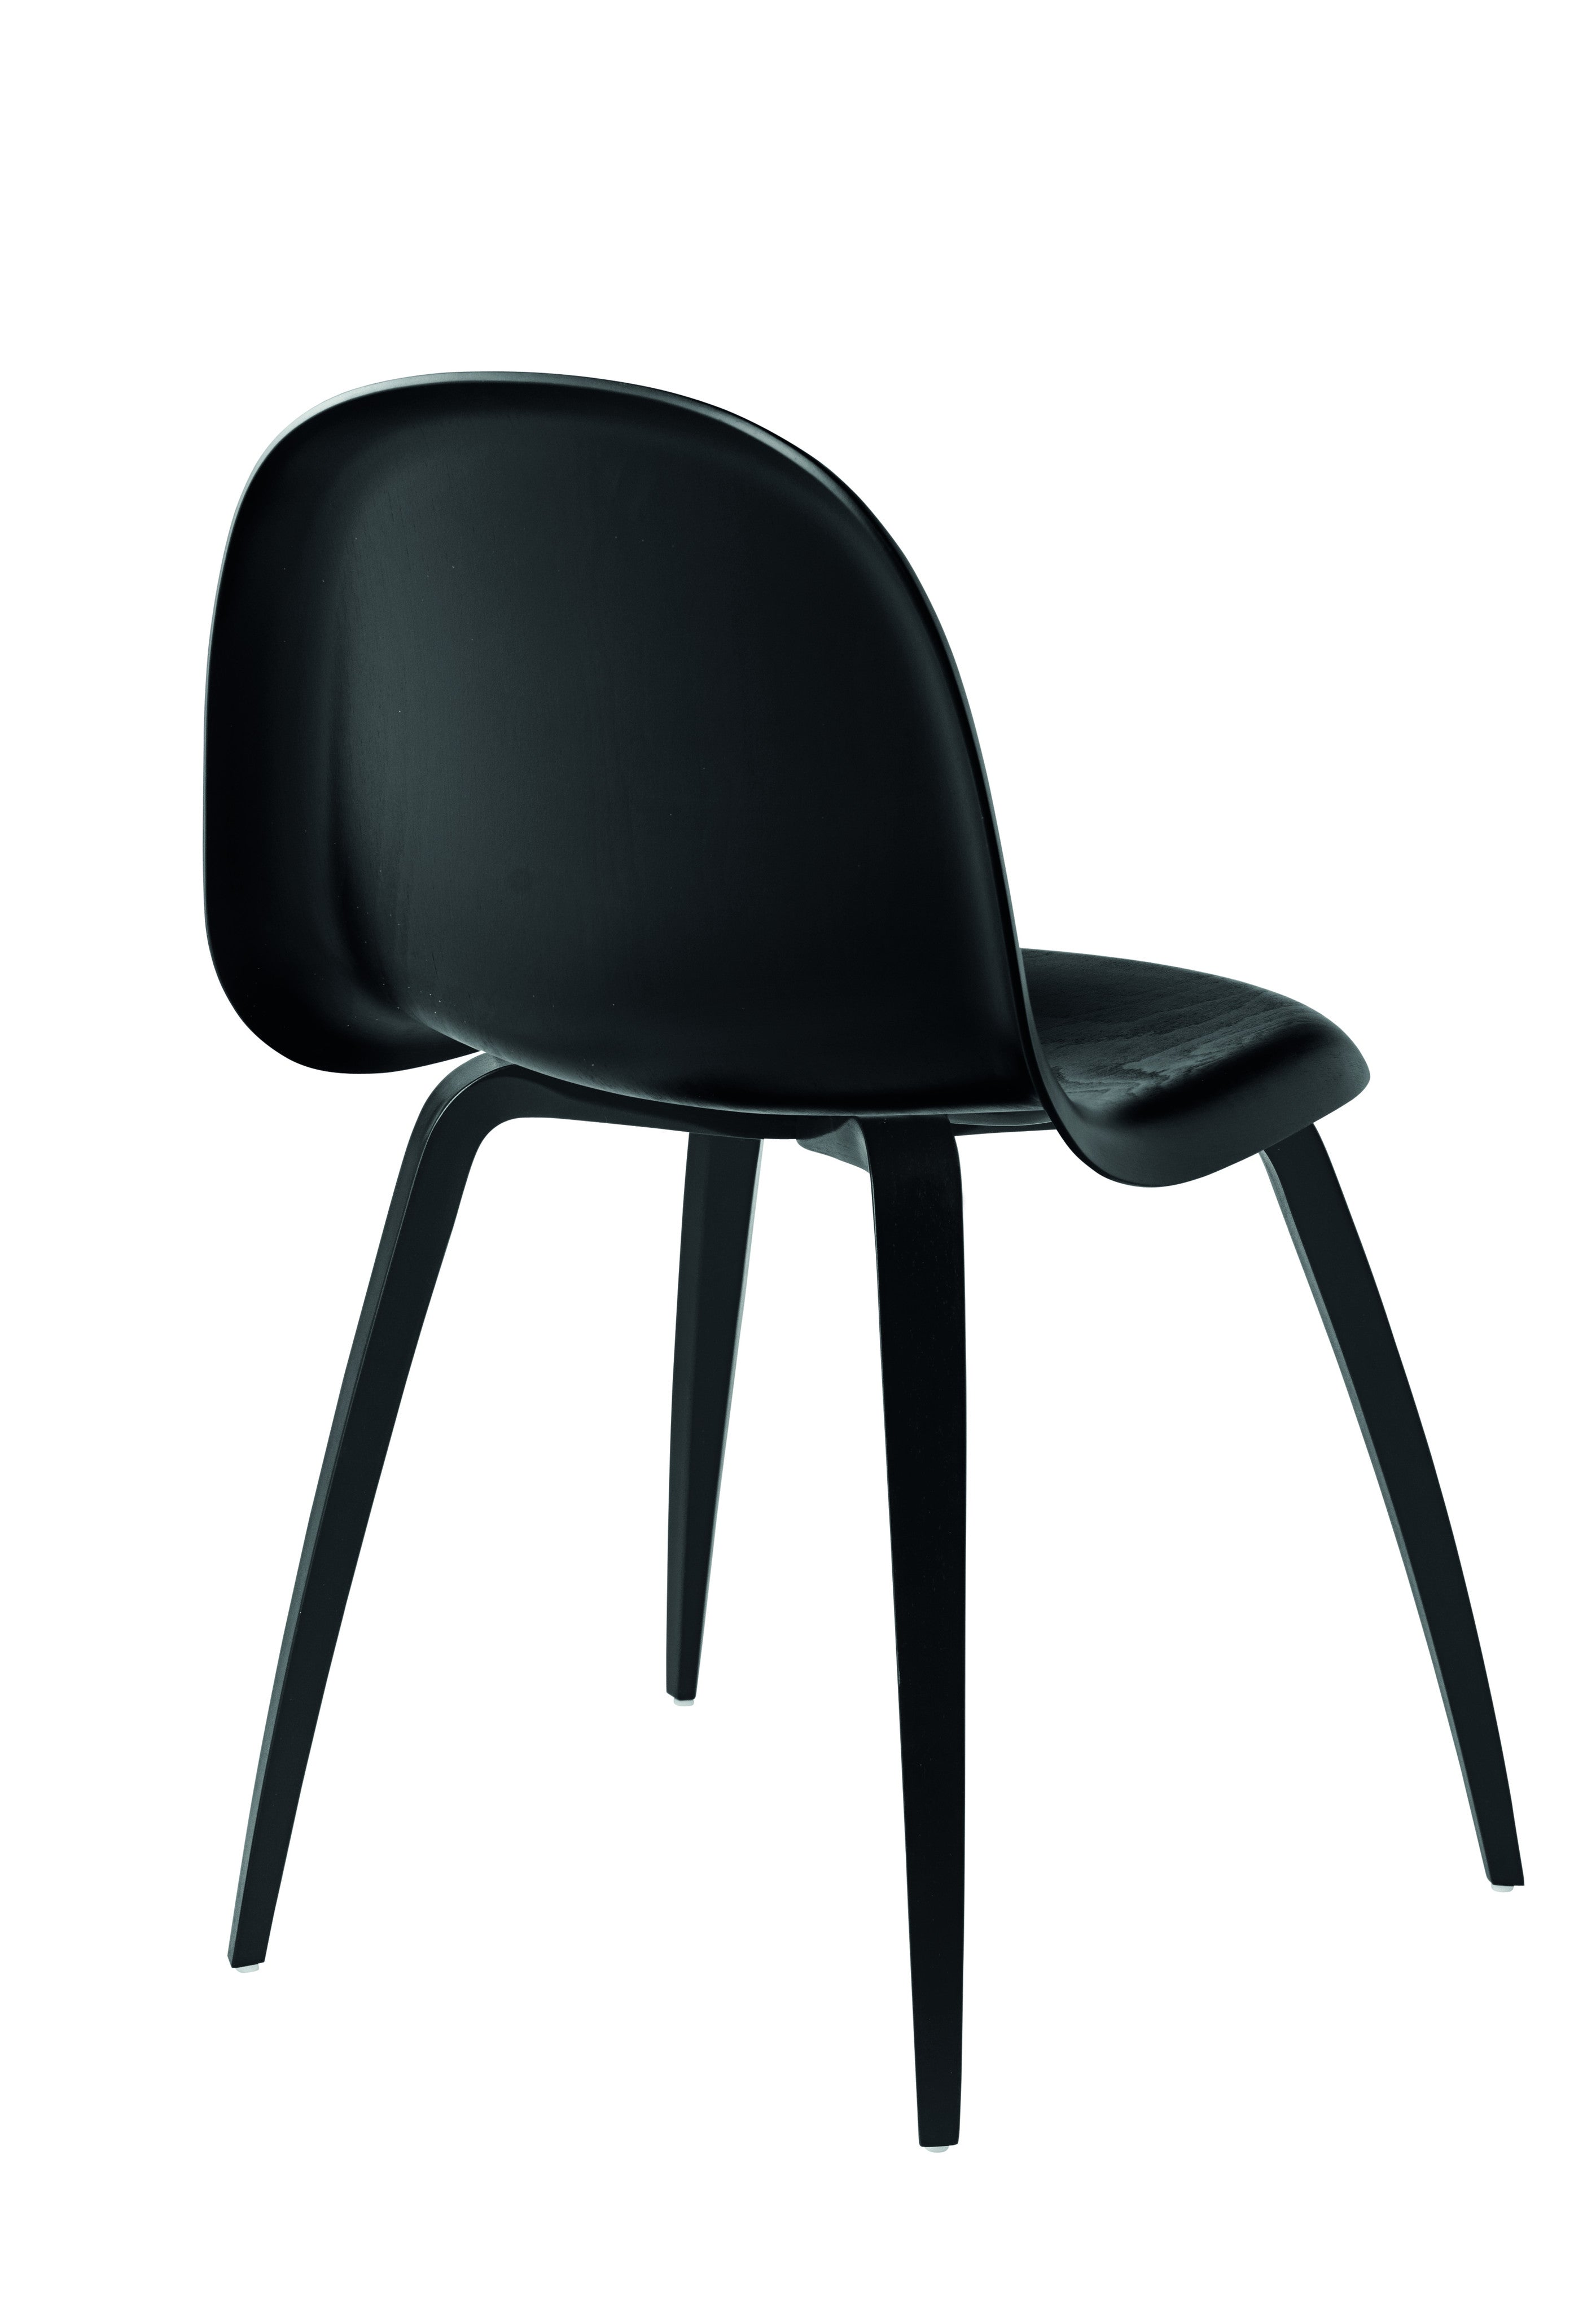 3D Dining Chair - Un-upholstered Black Stained Beech base, Black Stained Beech shell fra GUBI